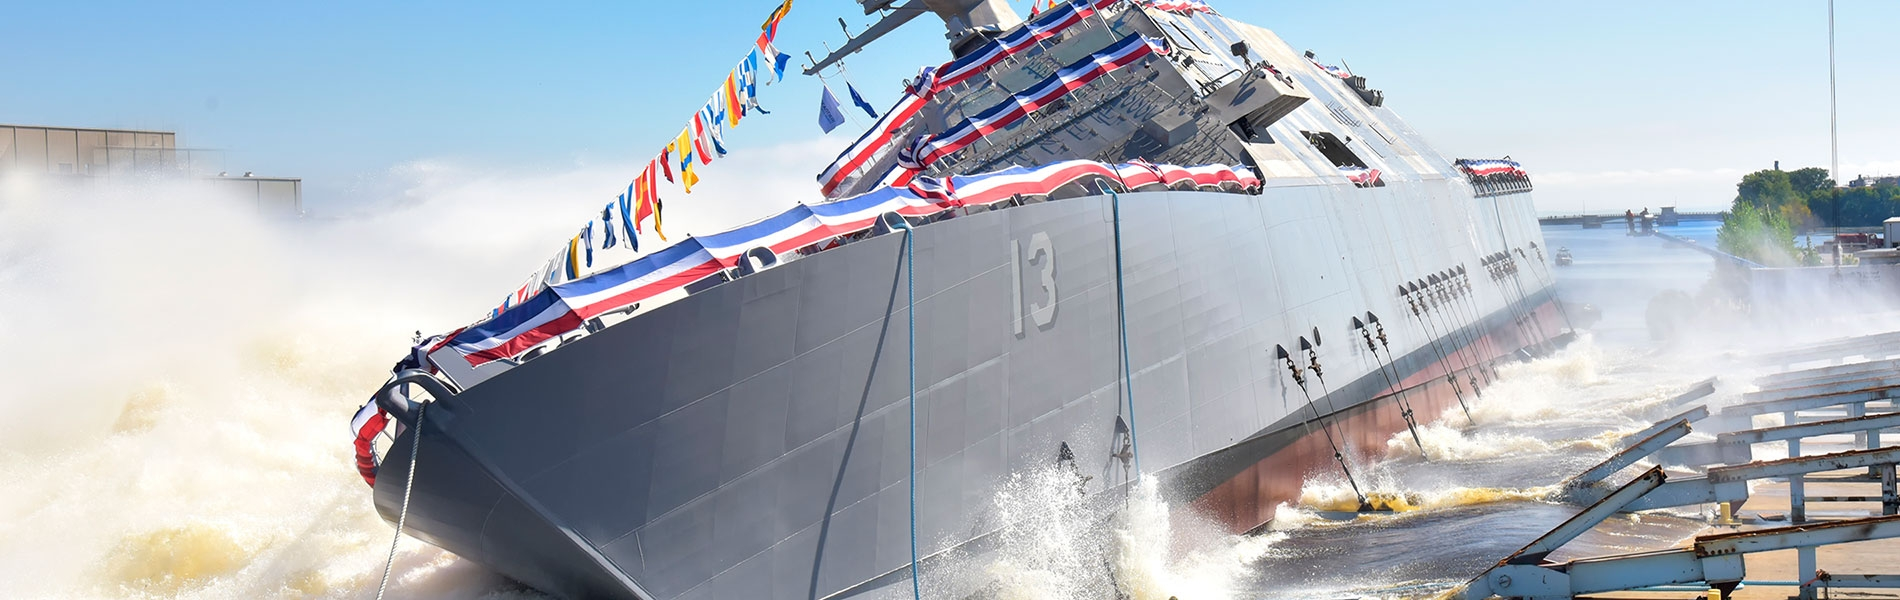 The 13th littoral combat ship, the future USS Wichita (LCS 13) launches sideways